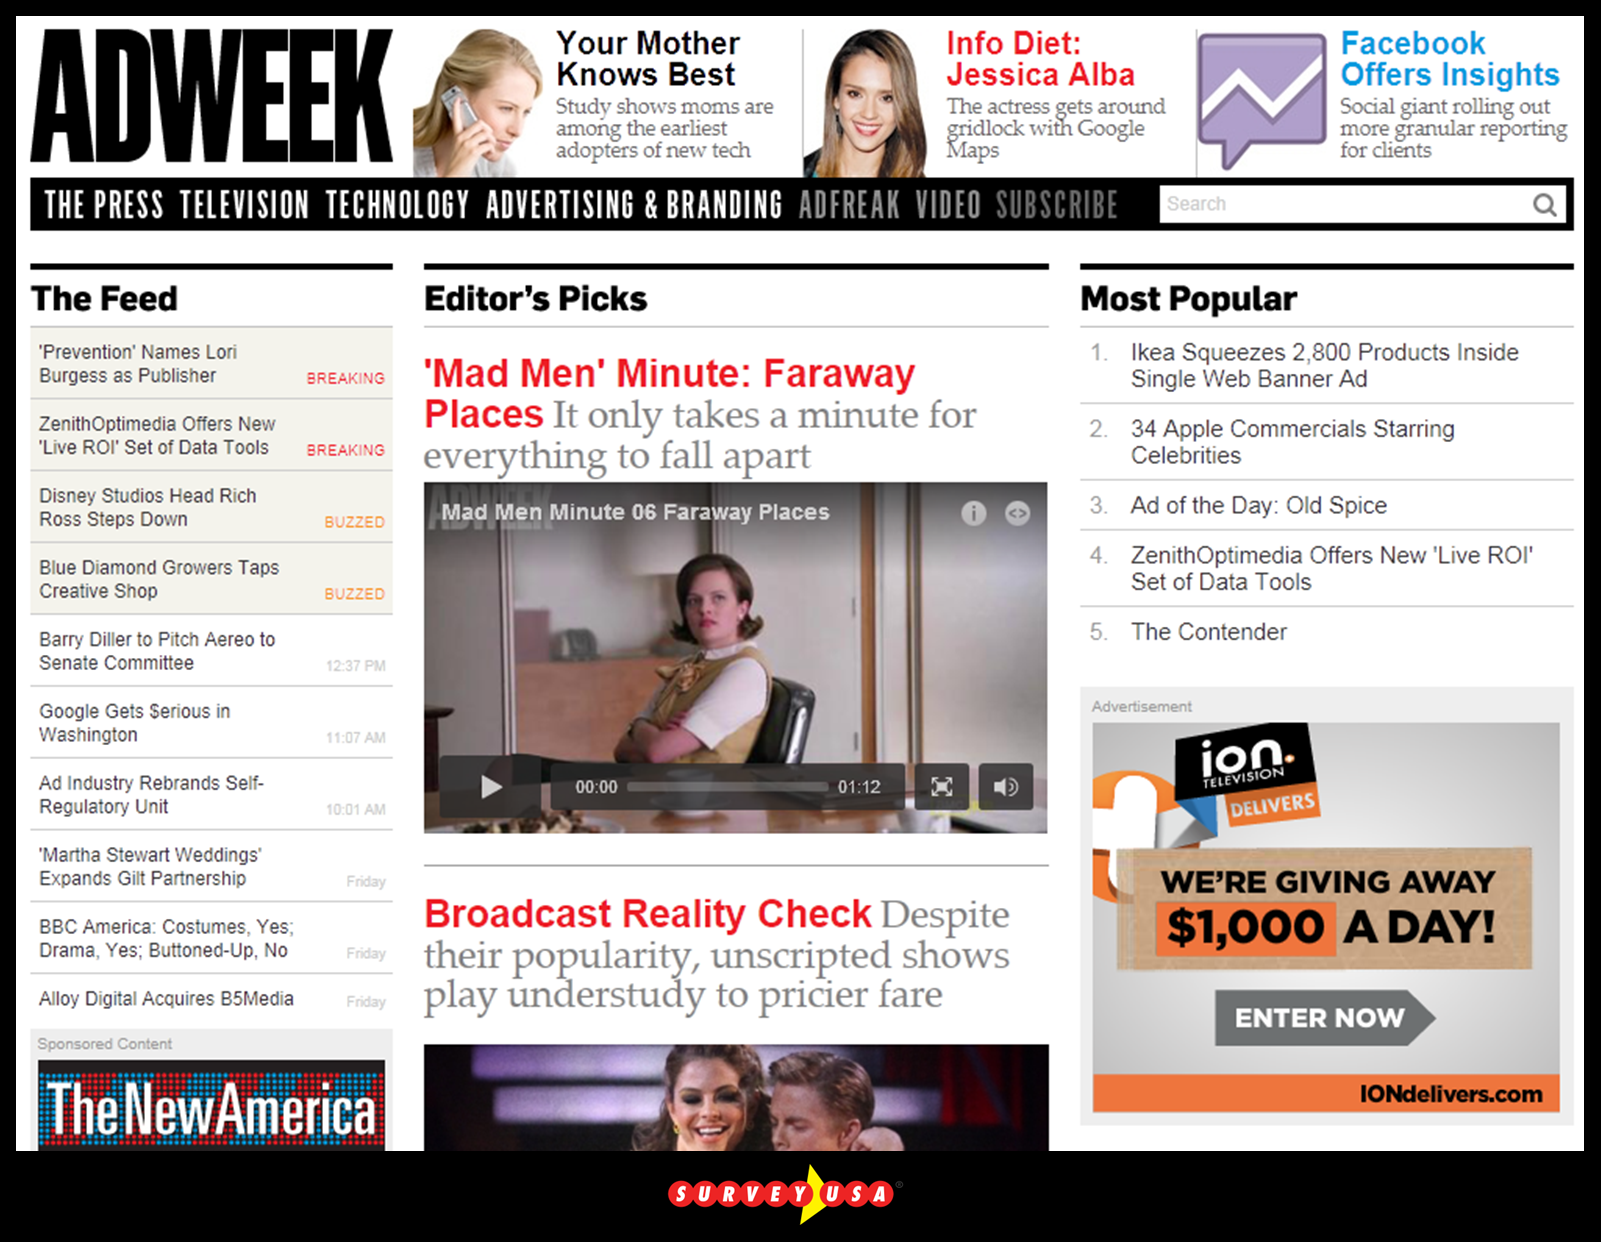 Adweek home page on 04/24/12